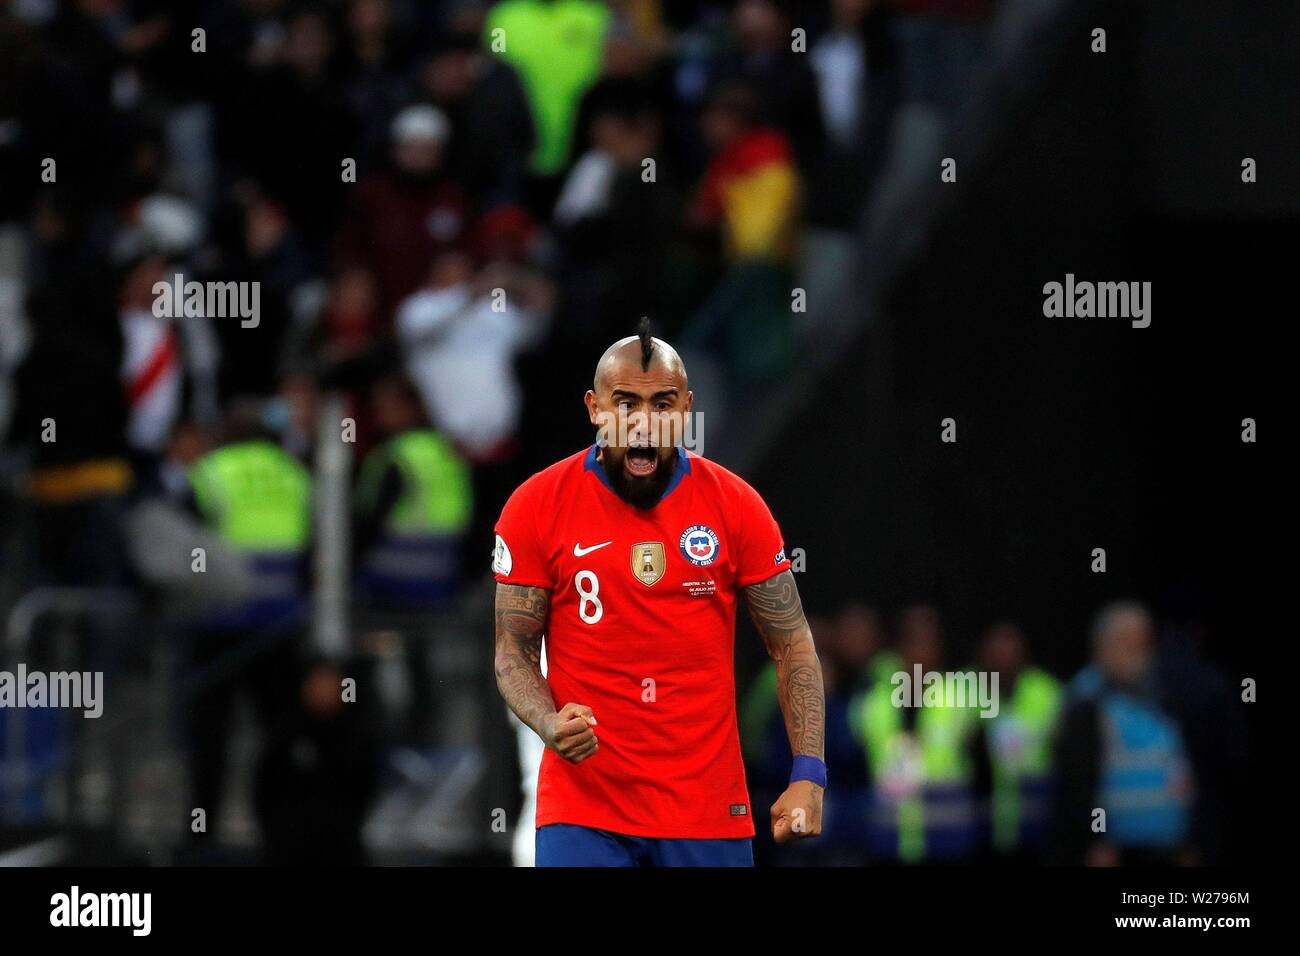 Sao Paulo, Brazil. 06th July, 2019. Argentina's players argue with referee Mario Diaz de Vivar during the Copa America 2019 3rd place soccer match between Argentina and Chile, at Arena Corinthians Stadium in Sao Paulo, Brazil, 6 July 2019. Credit: Paulo Whitaker/EFE/Alamy Live News - Stock Image